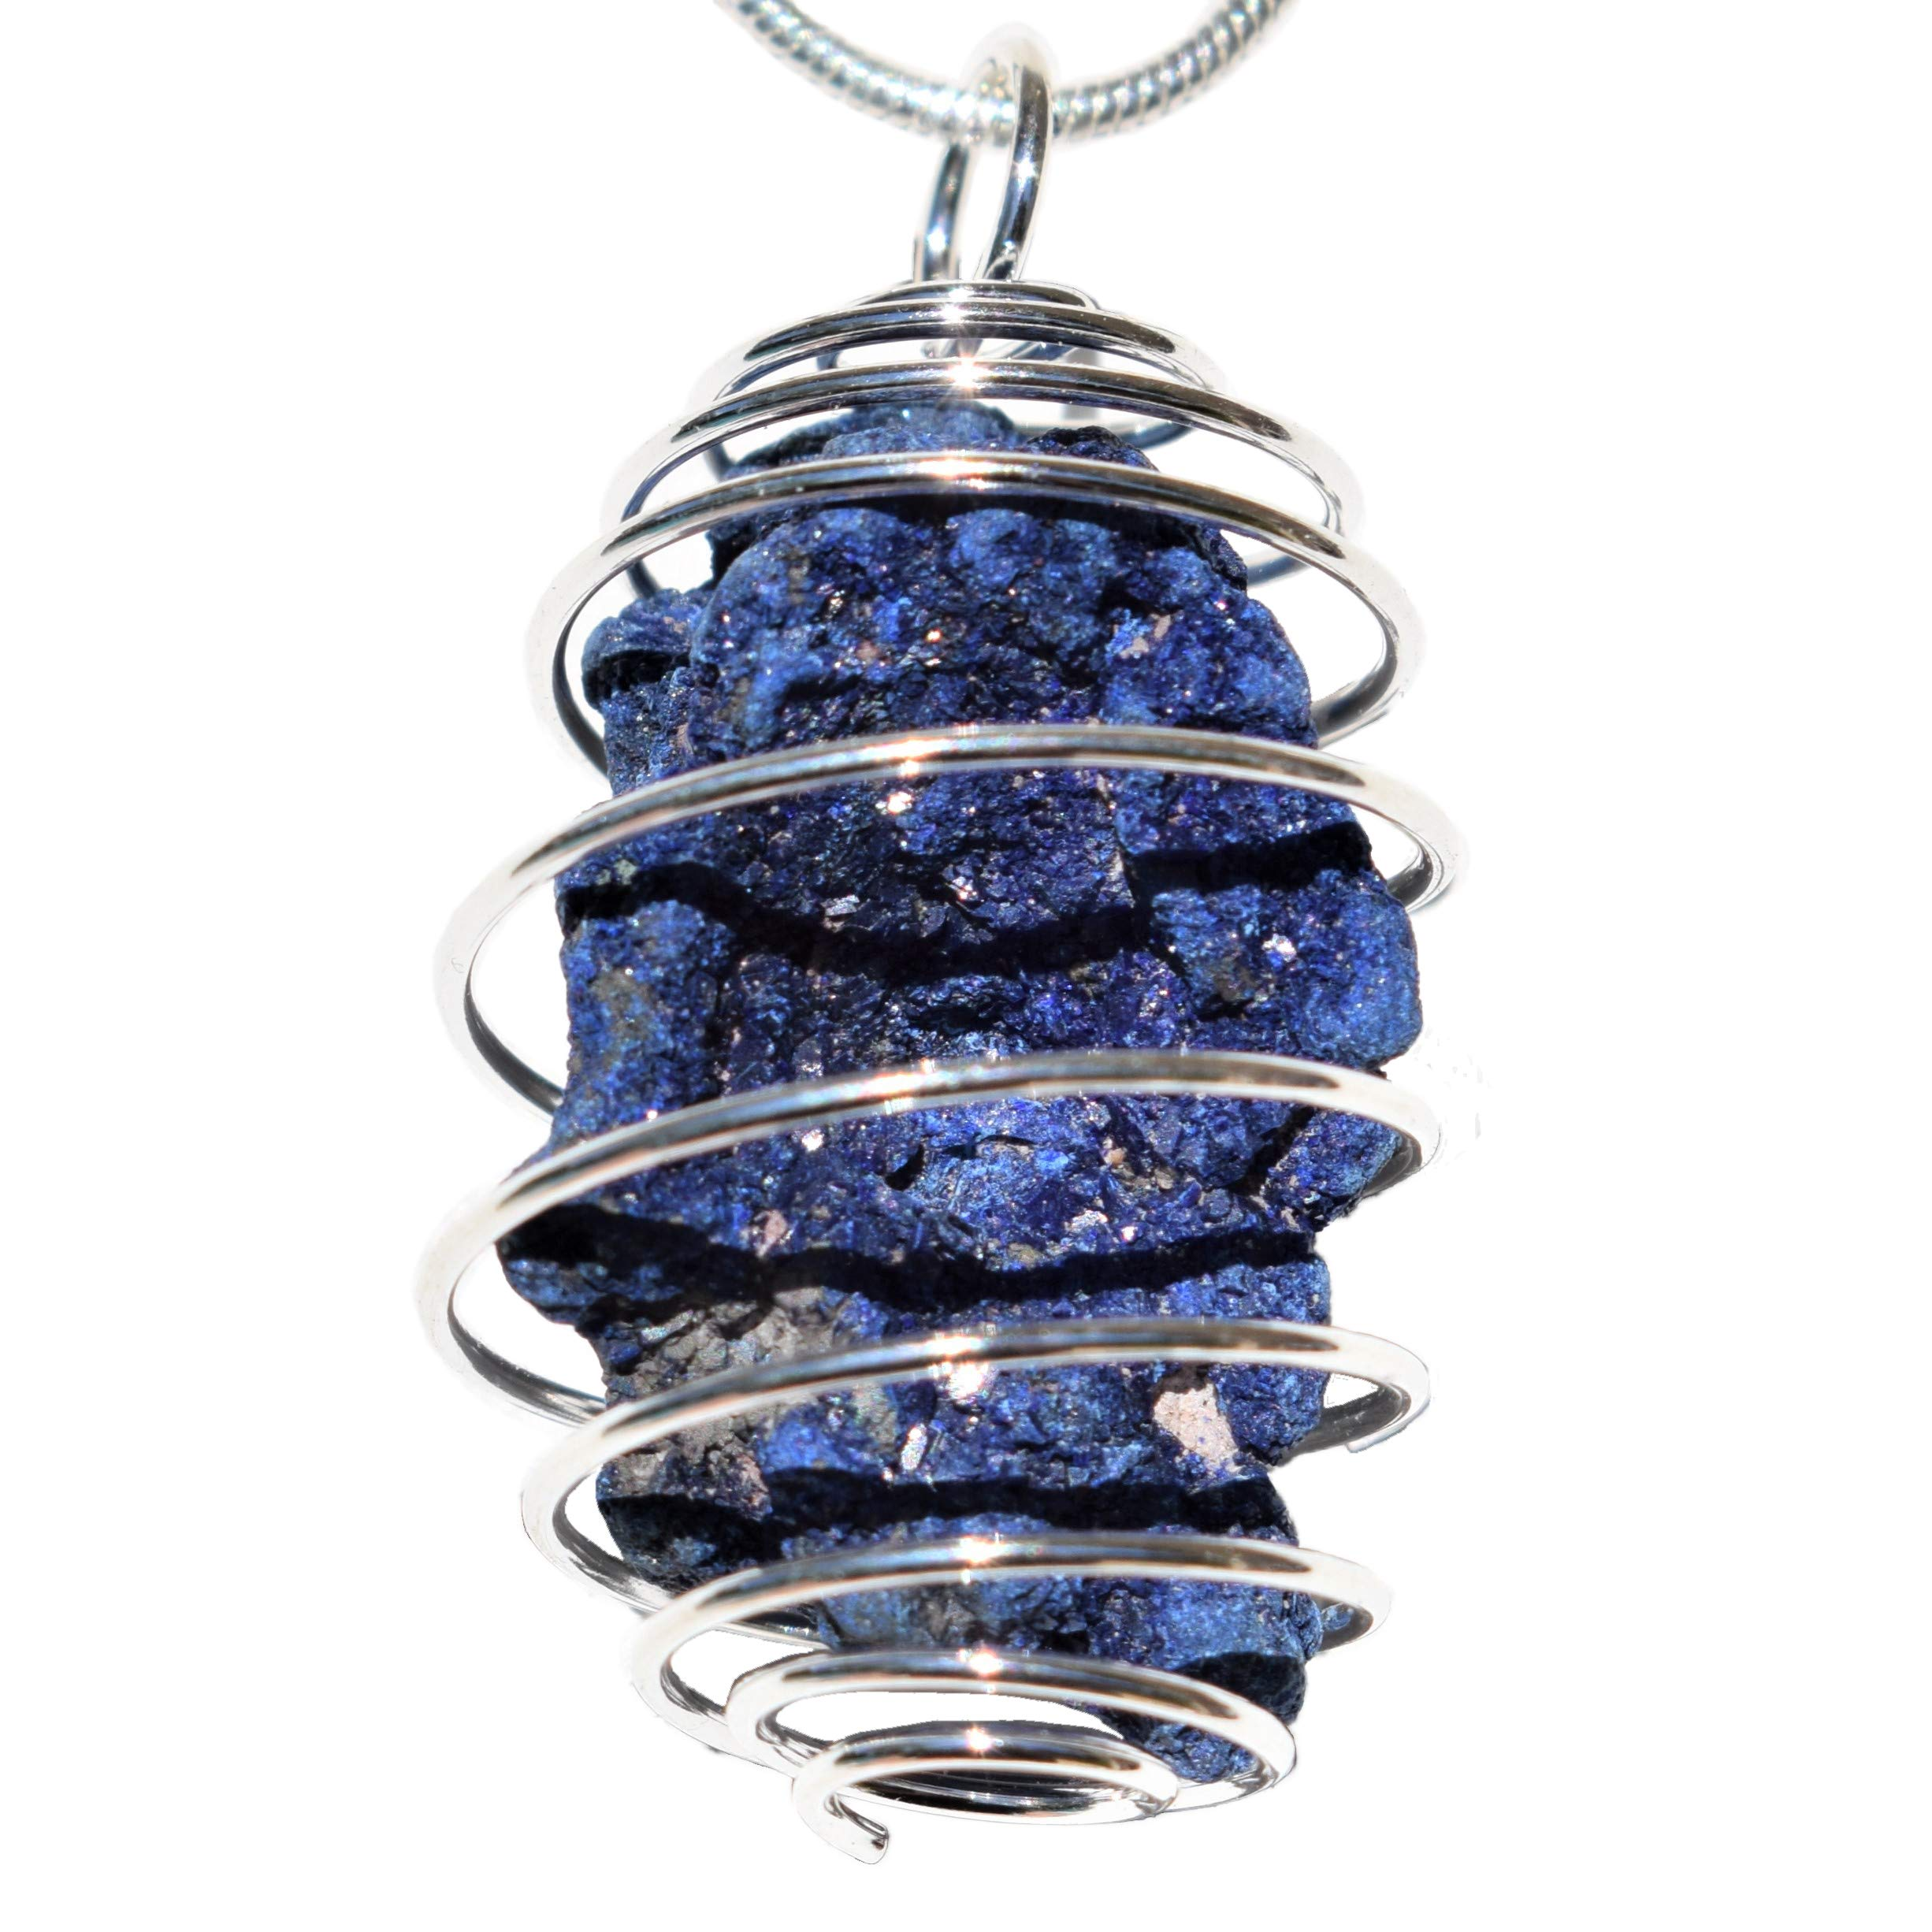 "Zenergy Gems Charged Natural Moroccan Azurite Specimen Crystal Pendant + 20"" Silver Plated Chain + Selenite Charging Heart [Included]"